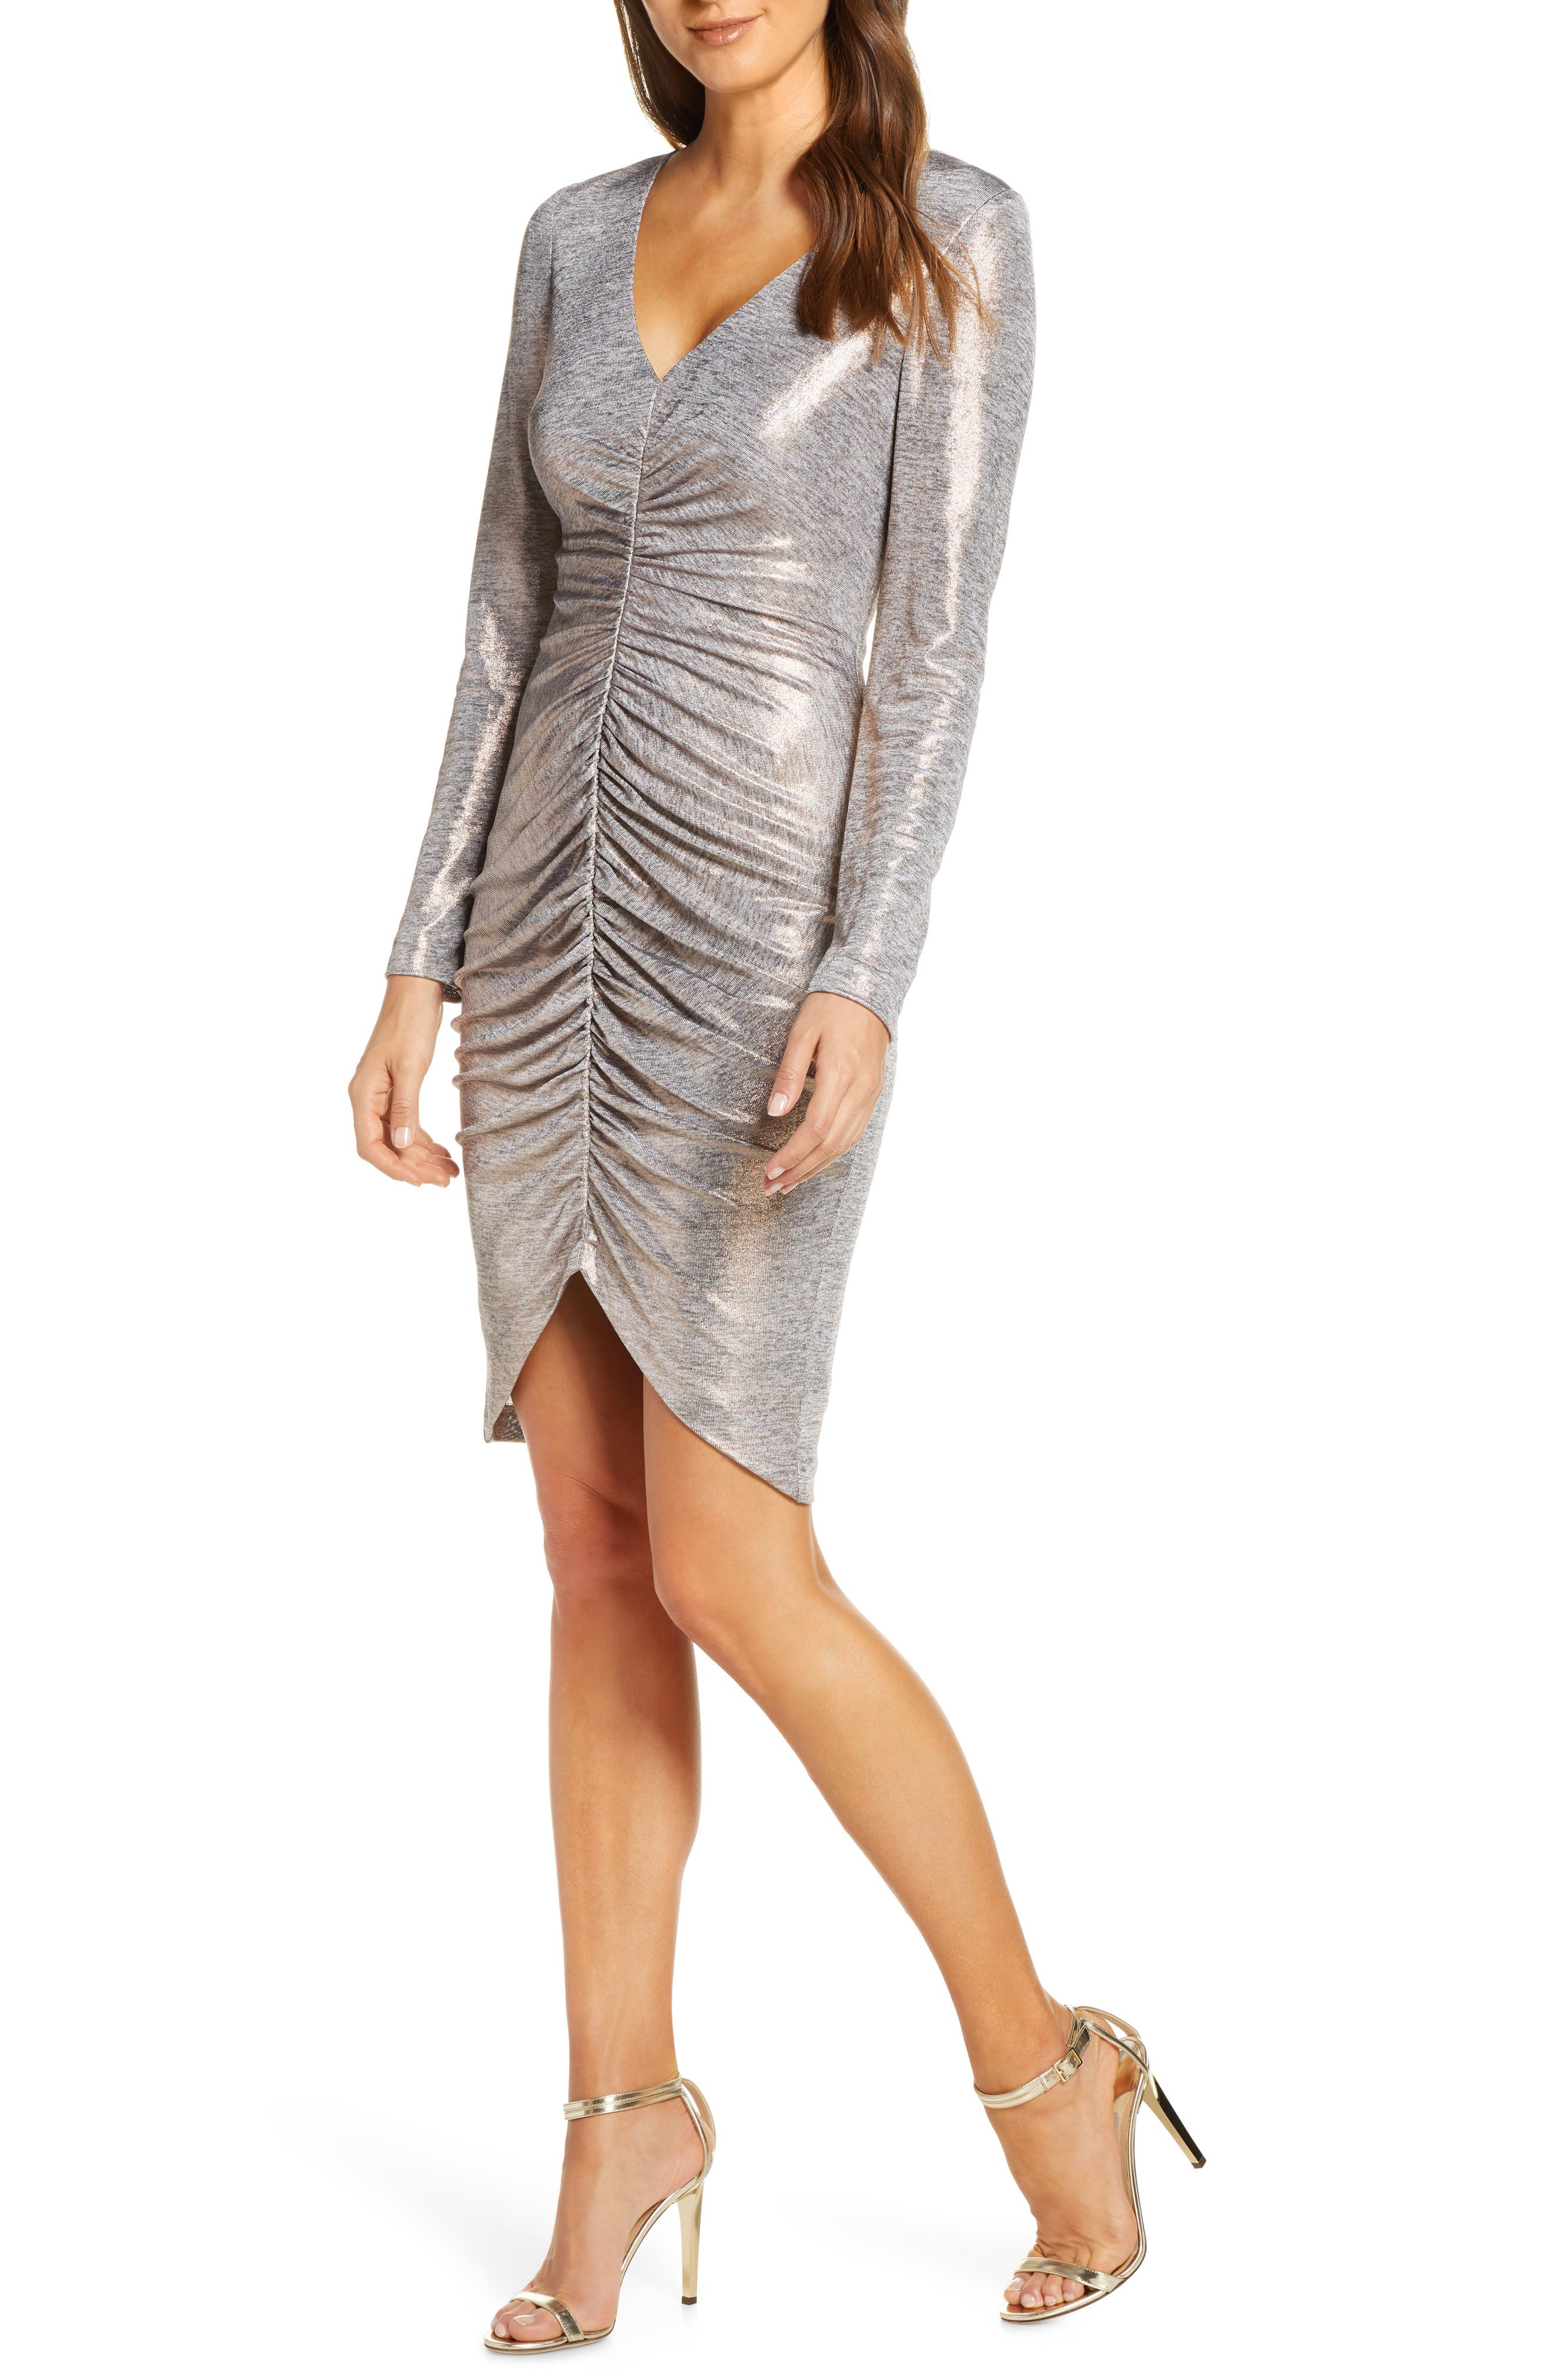 80s Dresses | Casual to Party Dresses Womens Vince Camuto Ruched Metallic Long Sleeve Cocktail Dress Size 8 - Metallic $148.00 AT vintagedancer.com